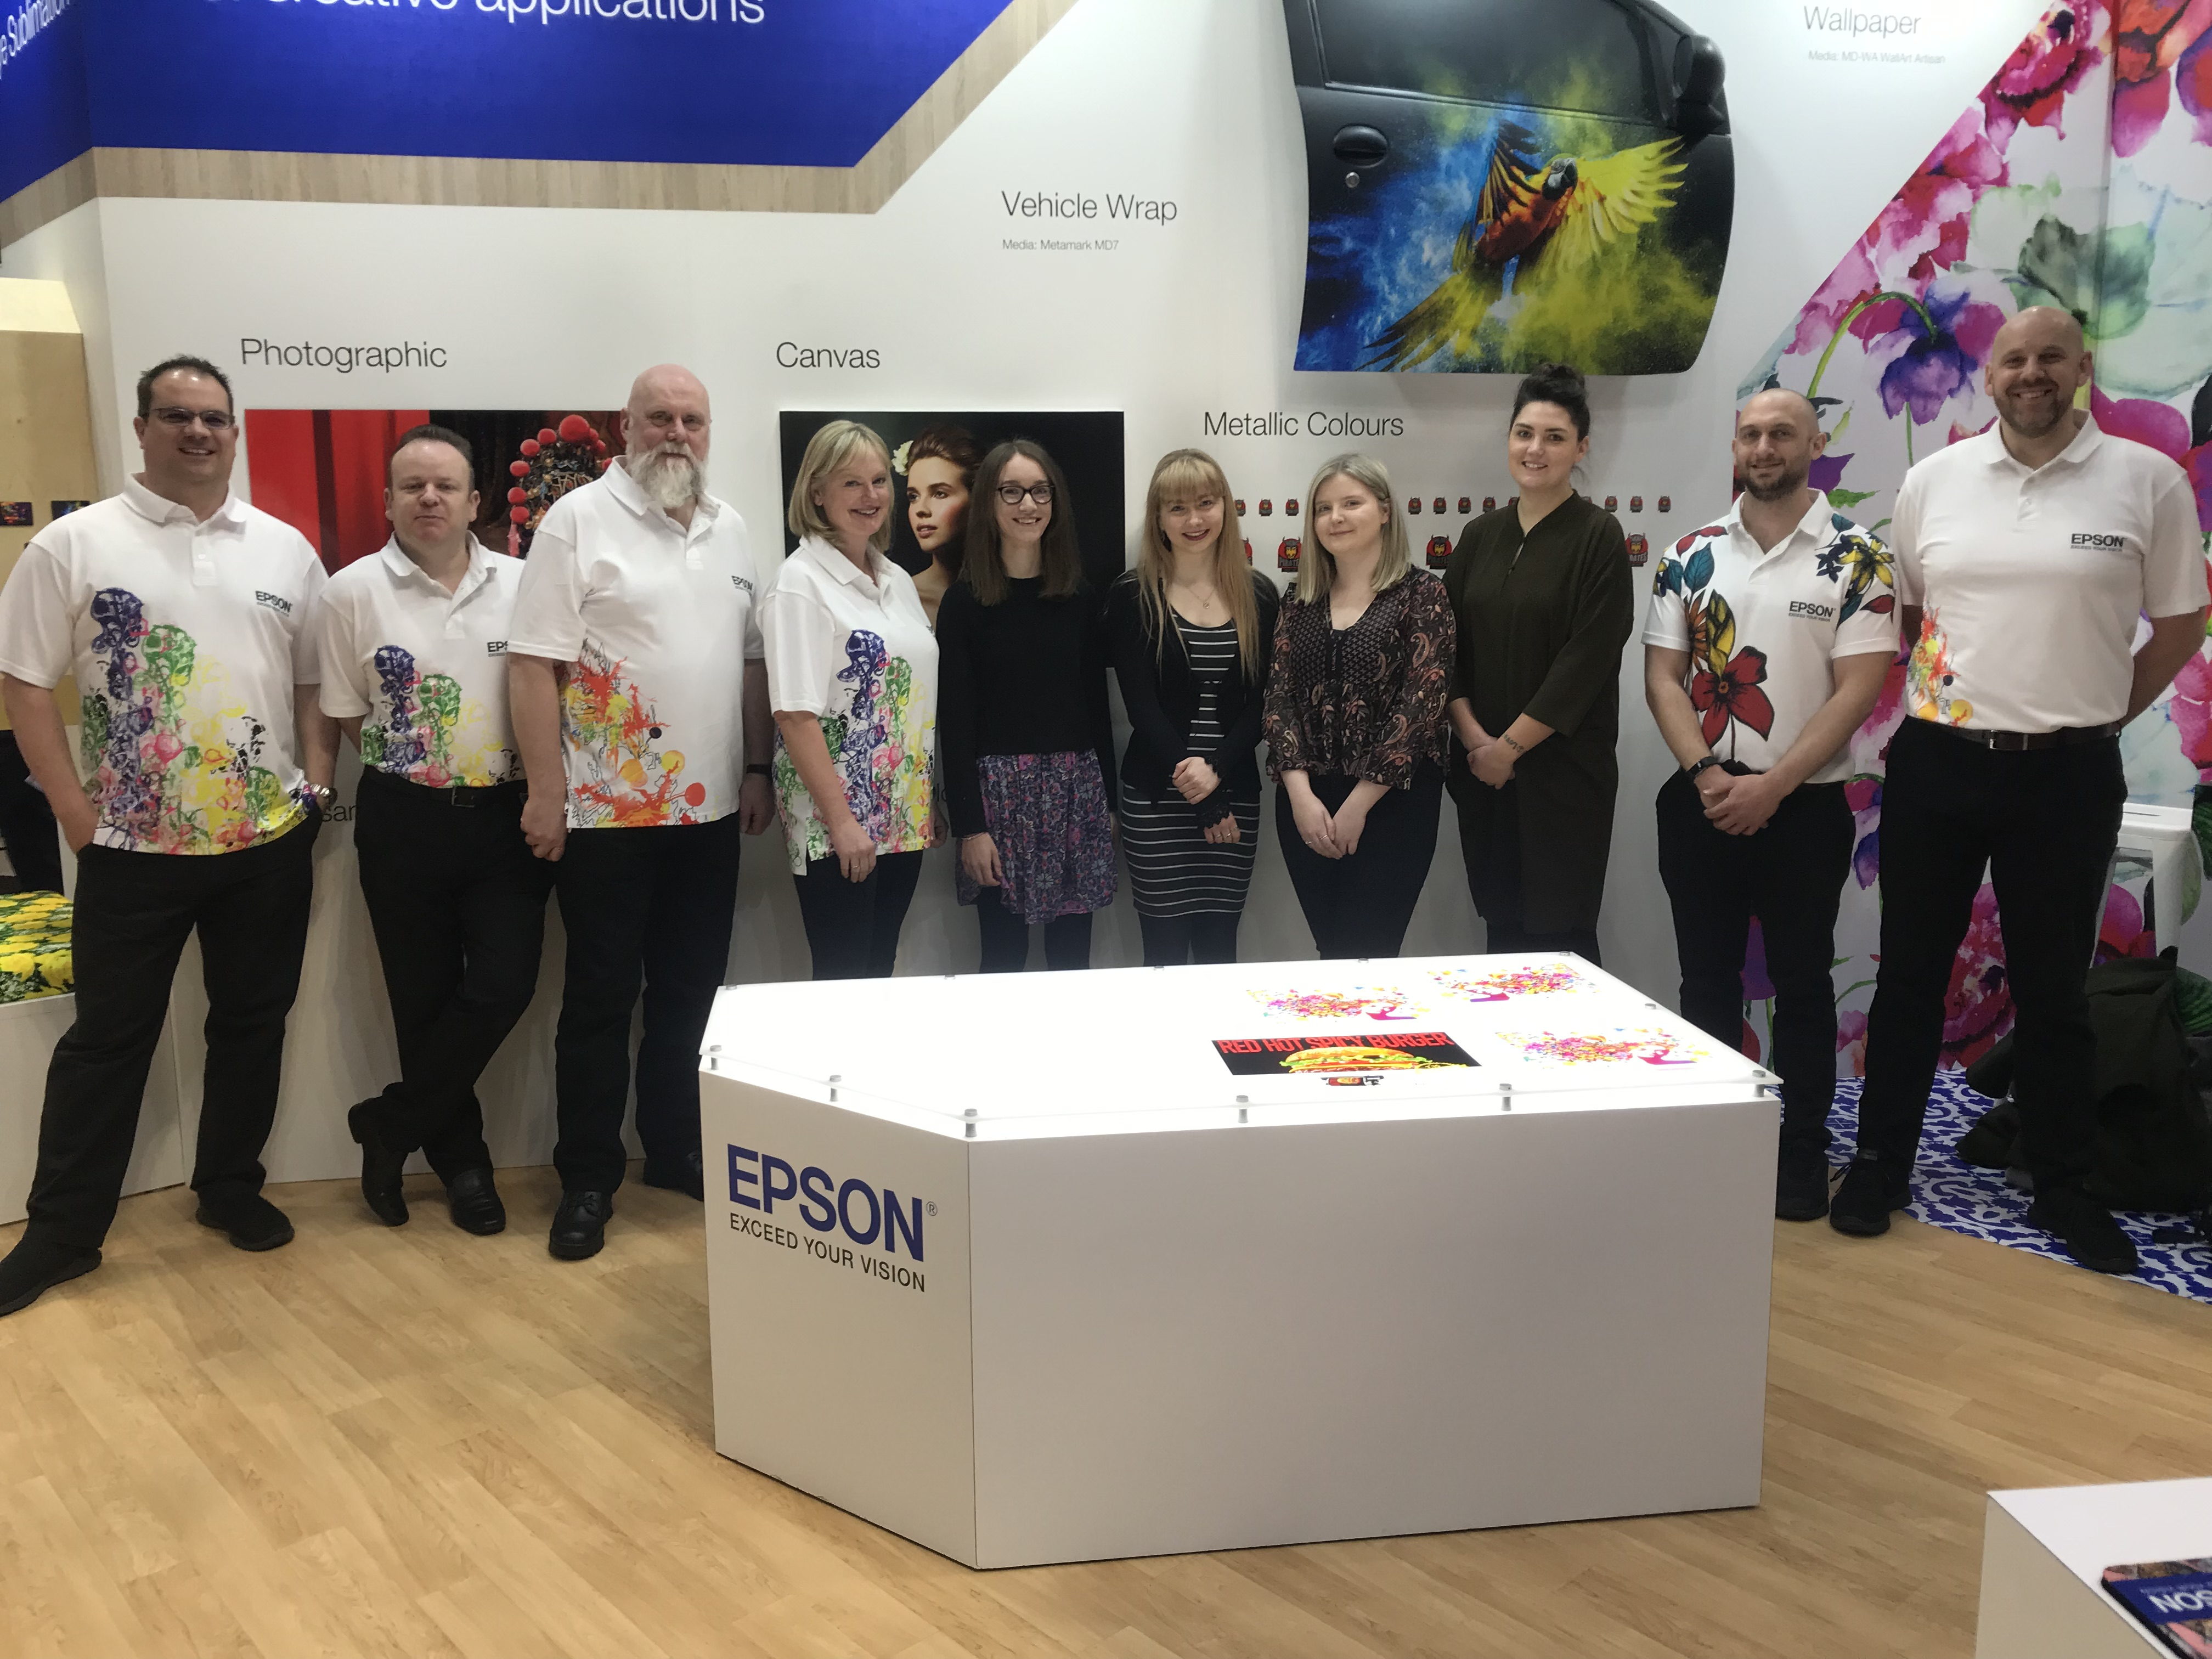 Birmingham City University students visit Sign & Digital to see their textile designs in action on the Epson stand